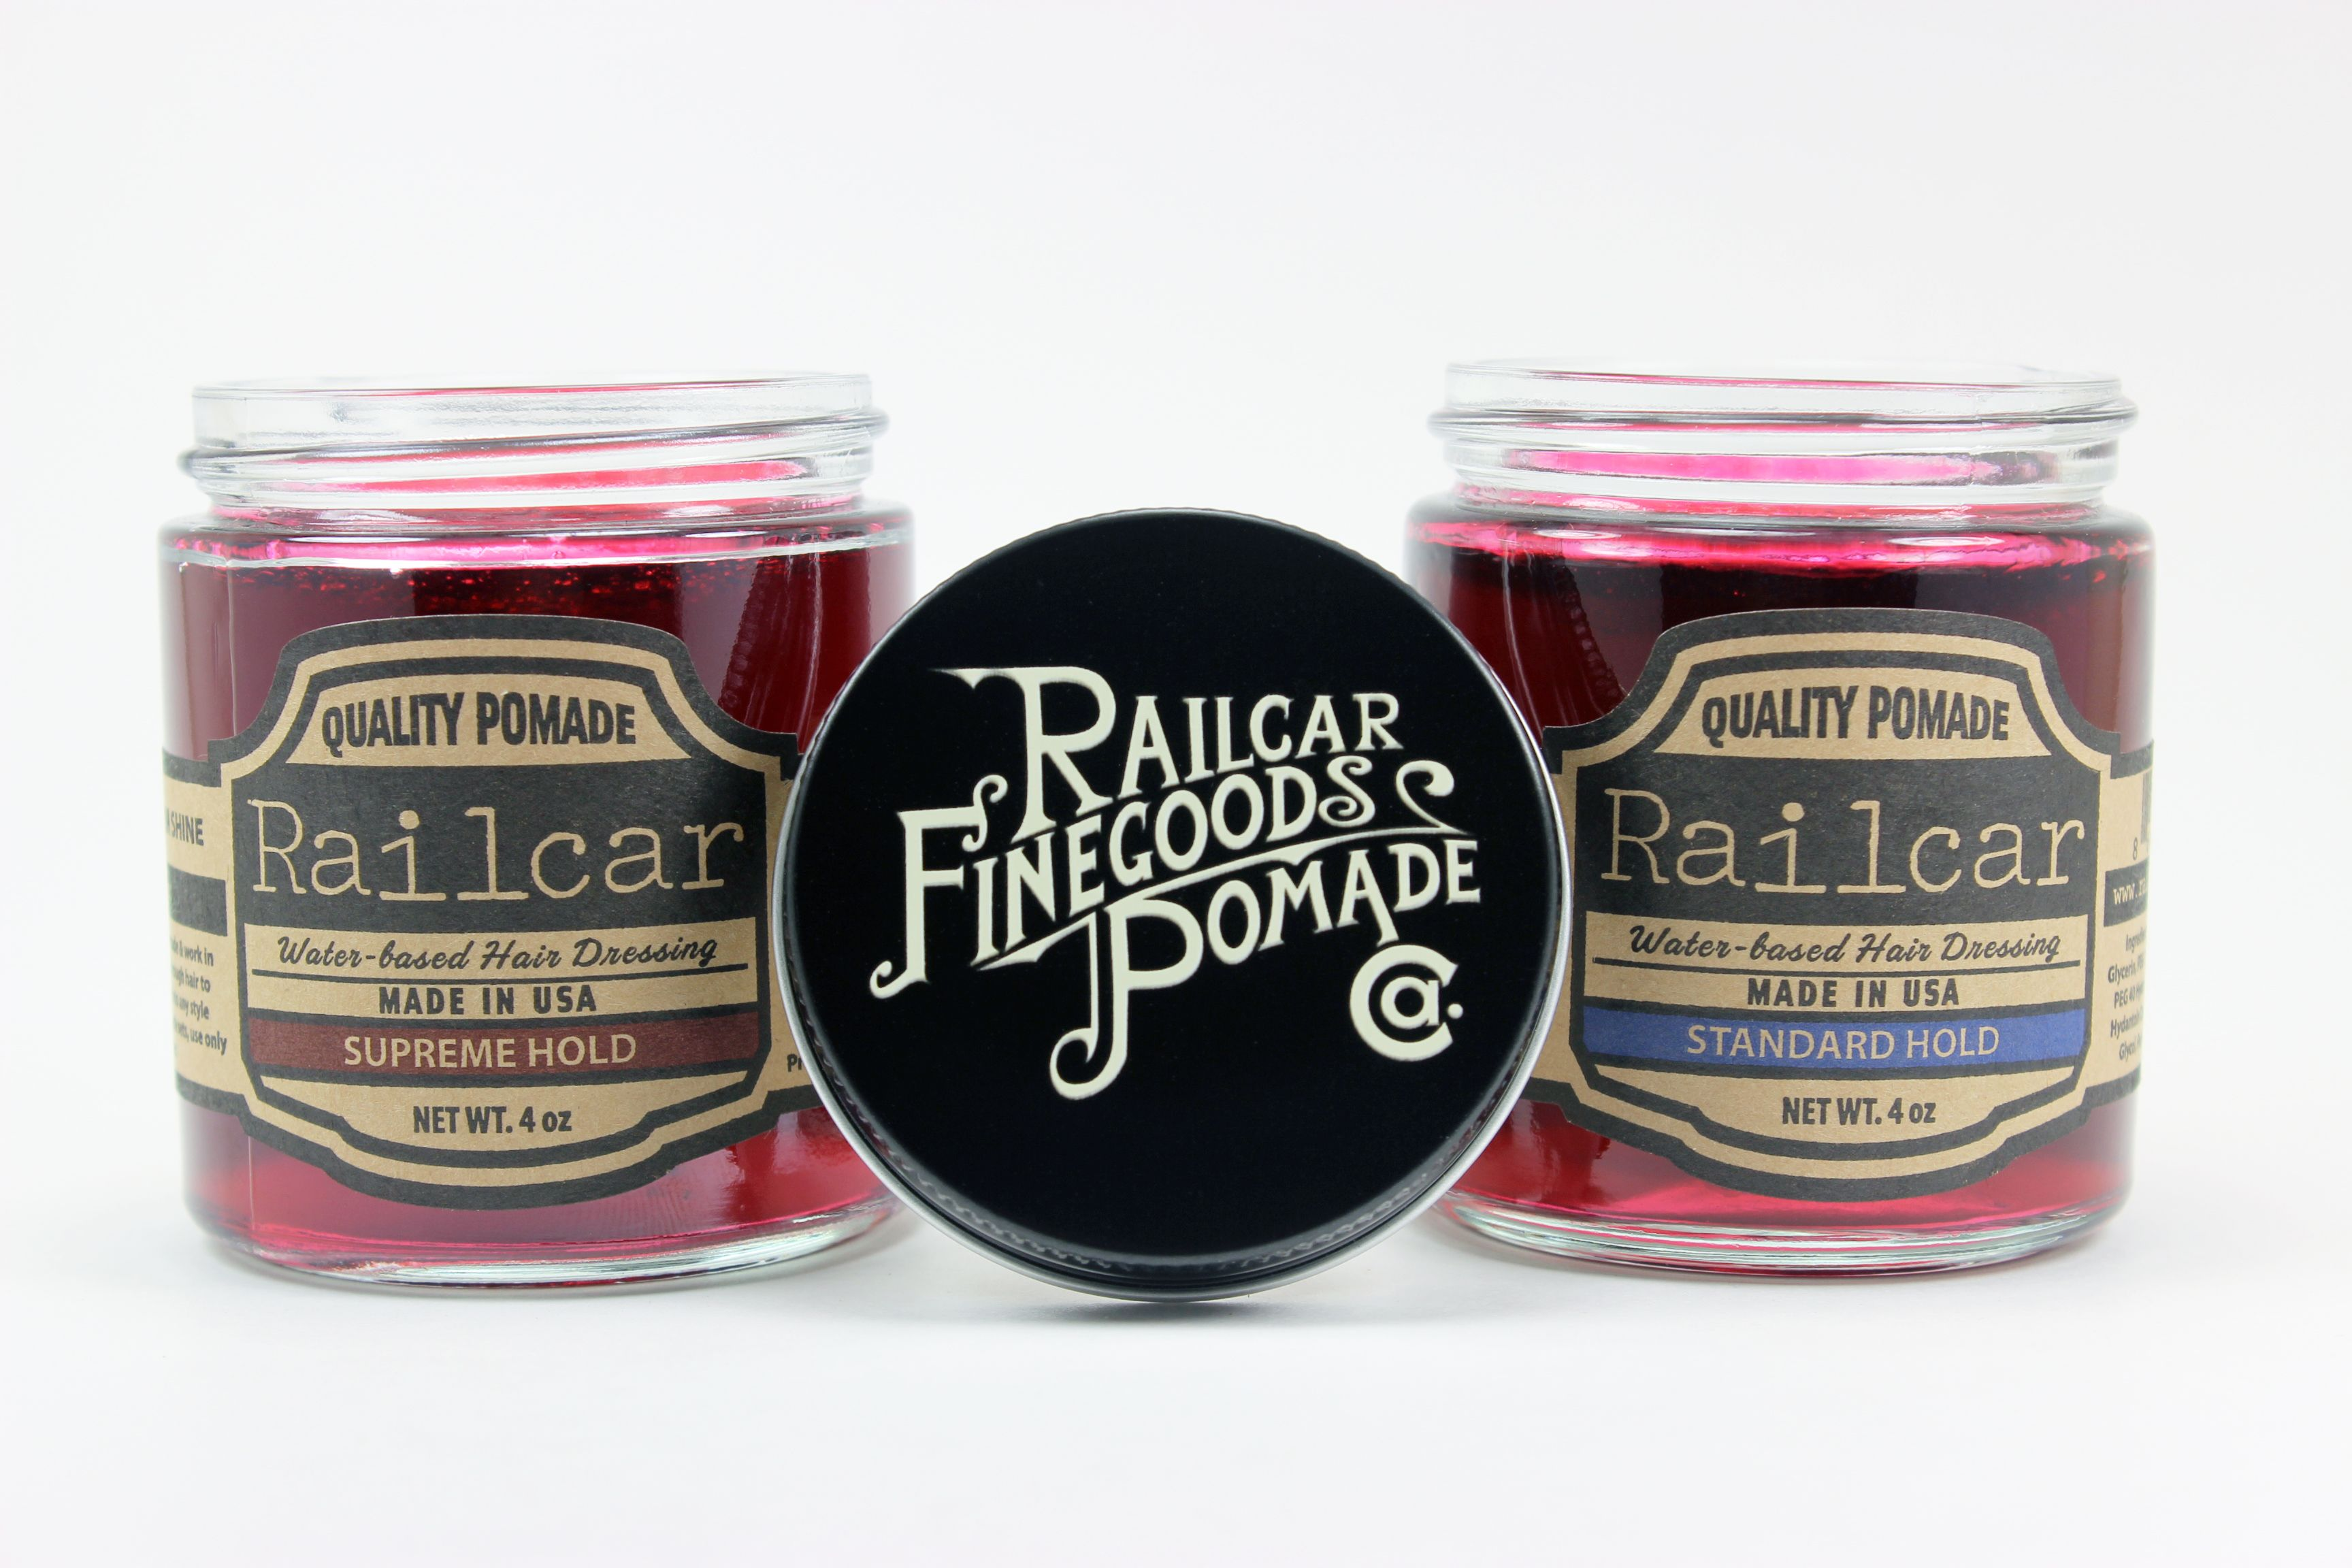 New Promotion Up Railcar Fine Goods Pomade Is 15 Off With Code Railcar Get Your Made In The Usa Water Based Hair Dressing Pomade Shop Hair Pomade Grooming